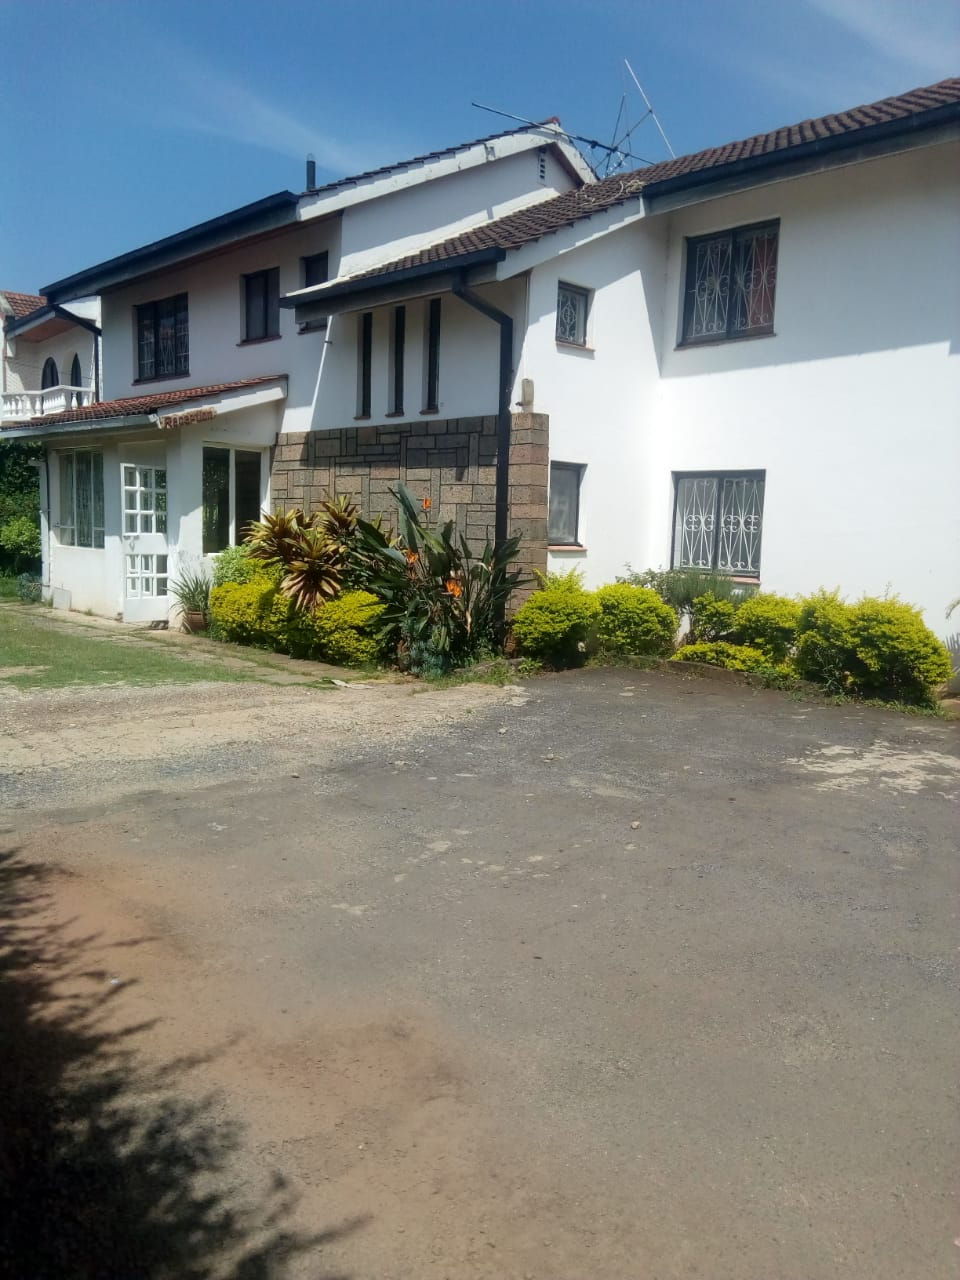 4 bedroom house to let in Kilimani